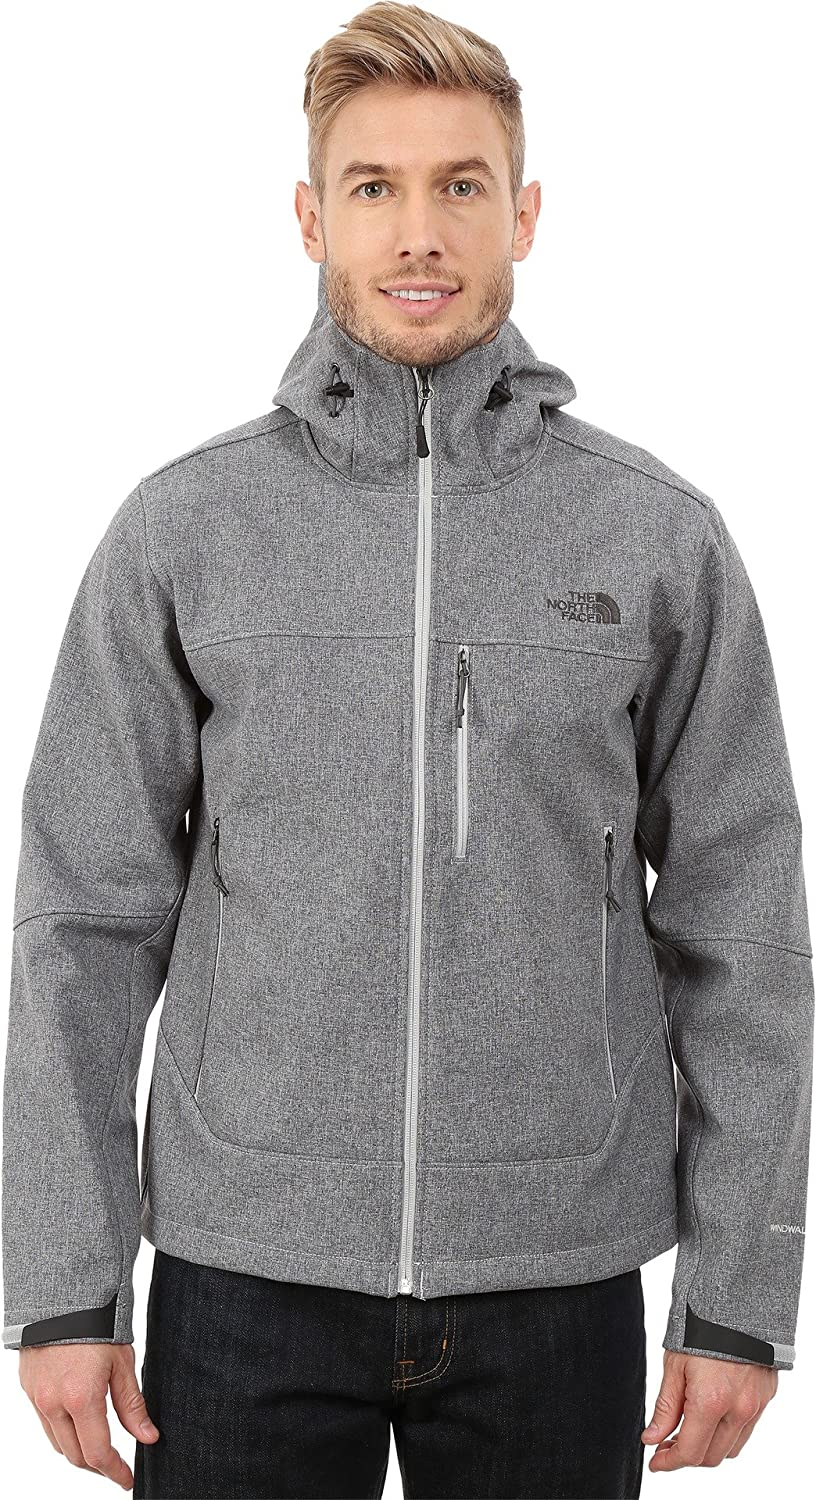 The North Face Men's Apex Bionic Hoodie, High Rise Grey Heather, LG